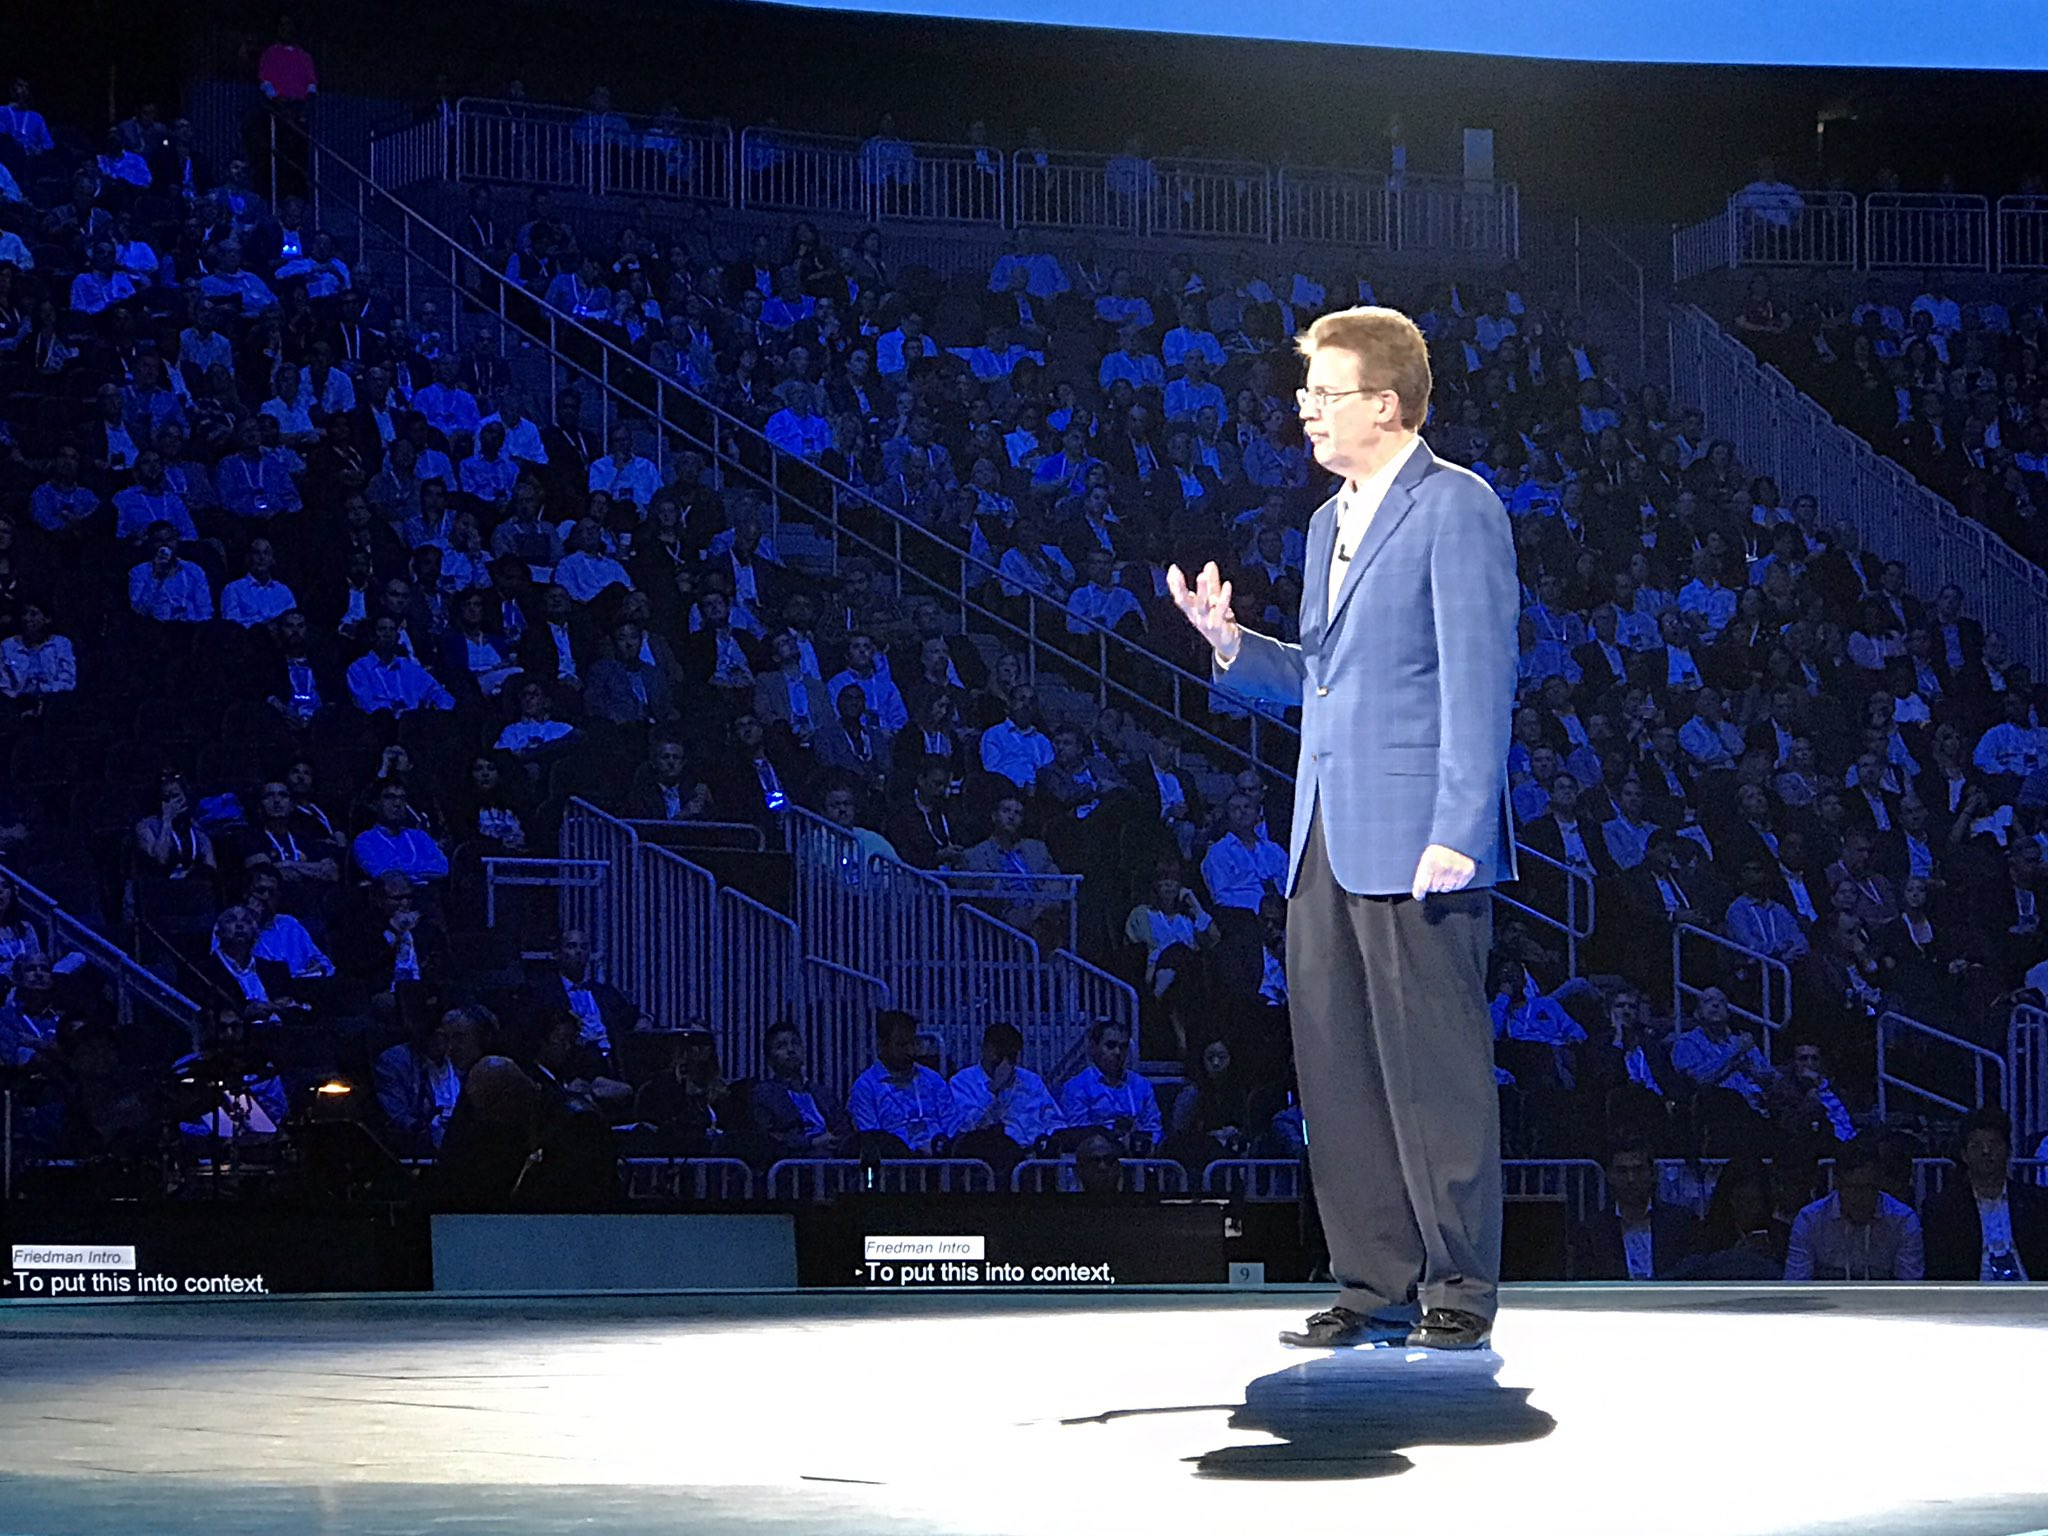 John Kelly predicts there will no longer be business decisions or acquisitions made without considering AI and cognitive computing #ibmwow https://t.co/E3SszXWzO1